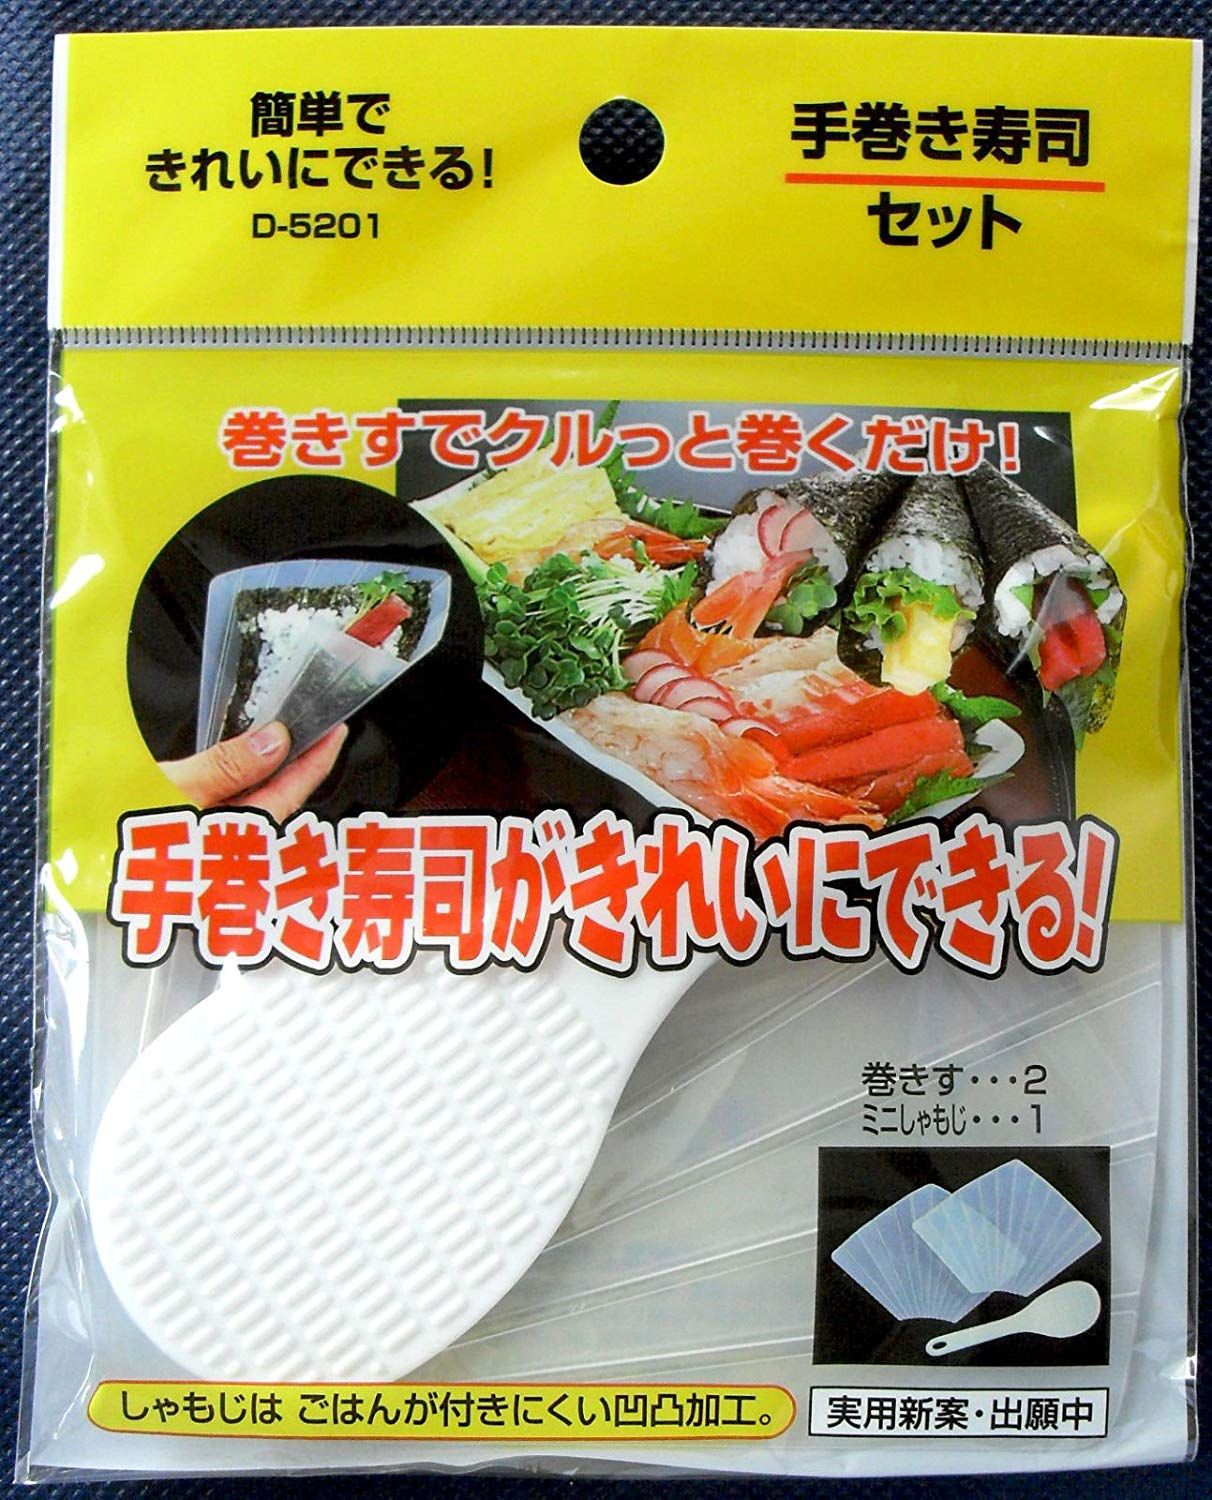 Japanese Plastic Non-Stick Hand Roll Temaki Sushi Mold Maker w/ Rice Paddle Set, Made in Japan